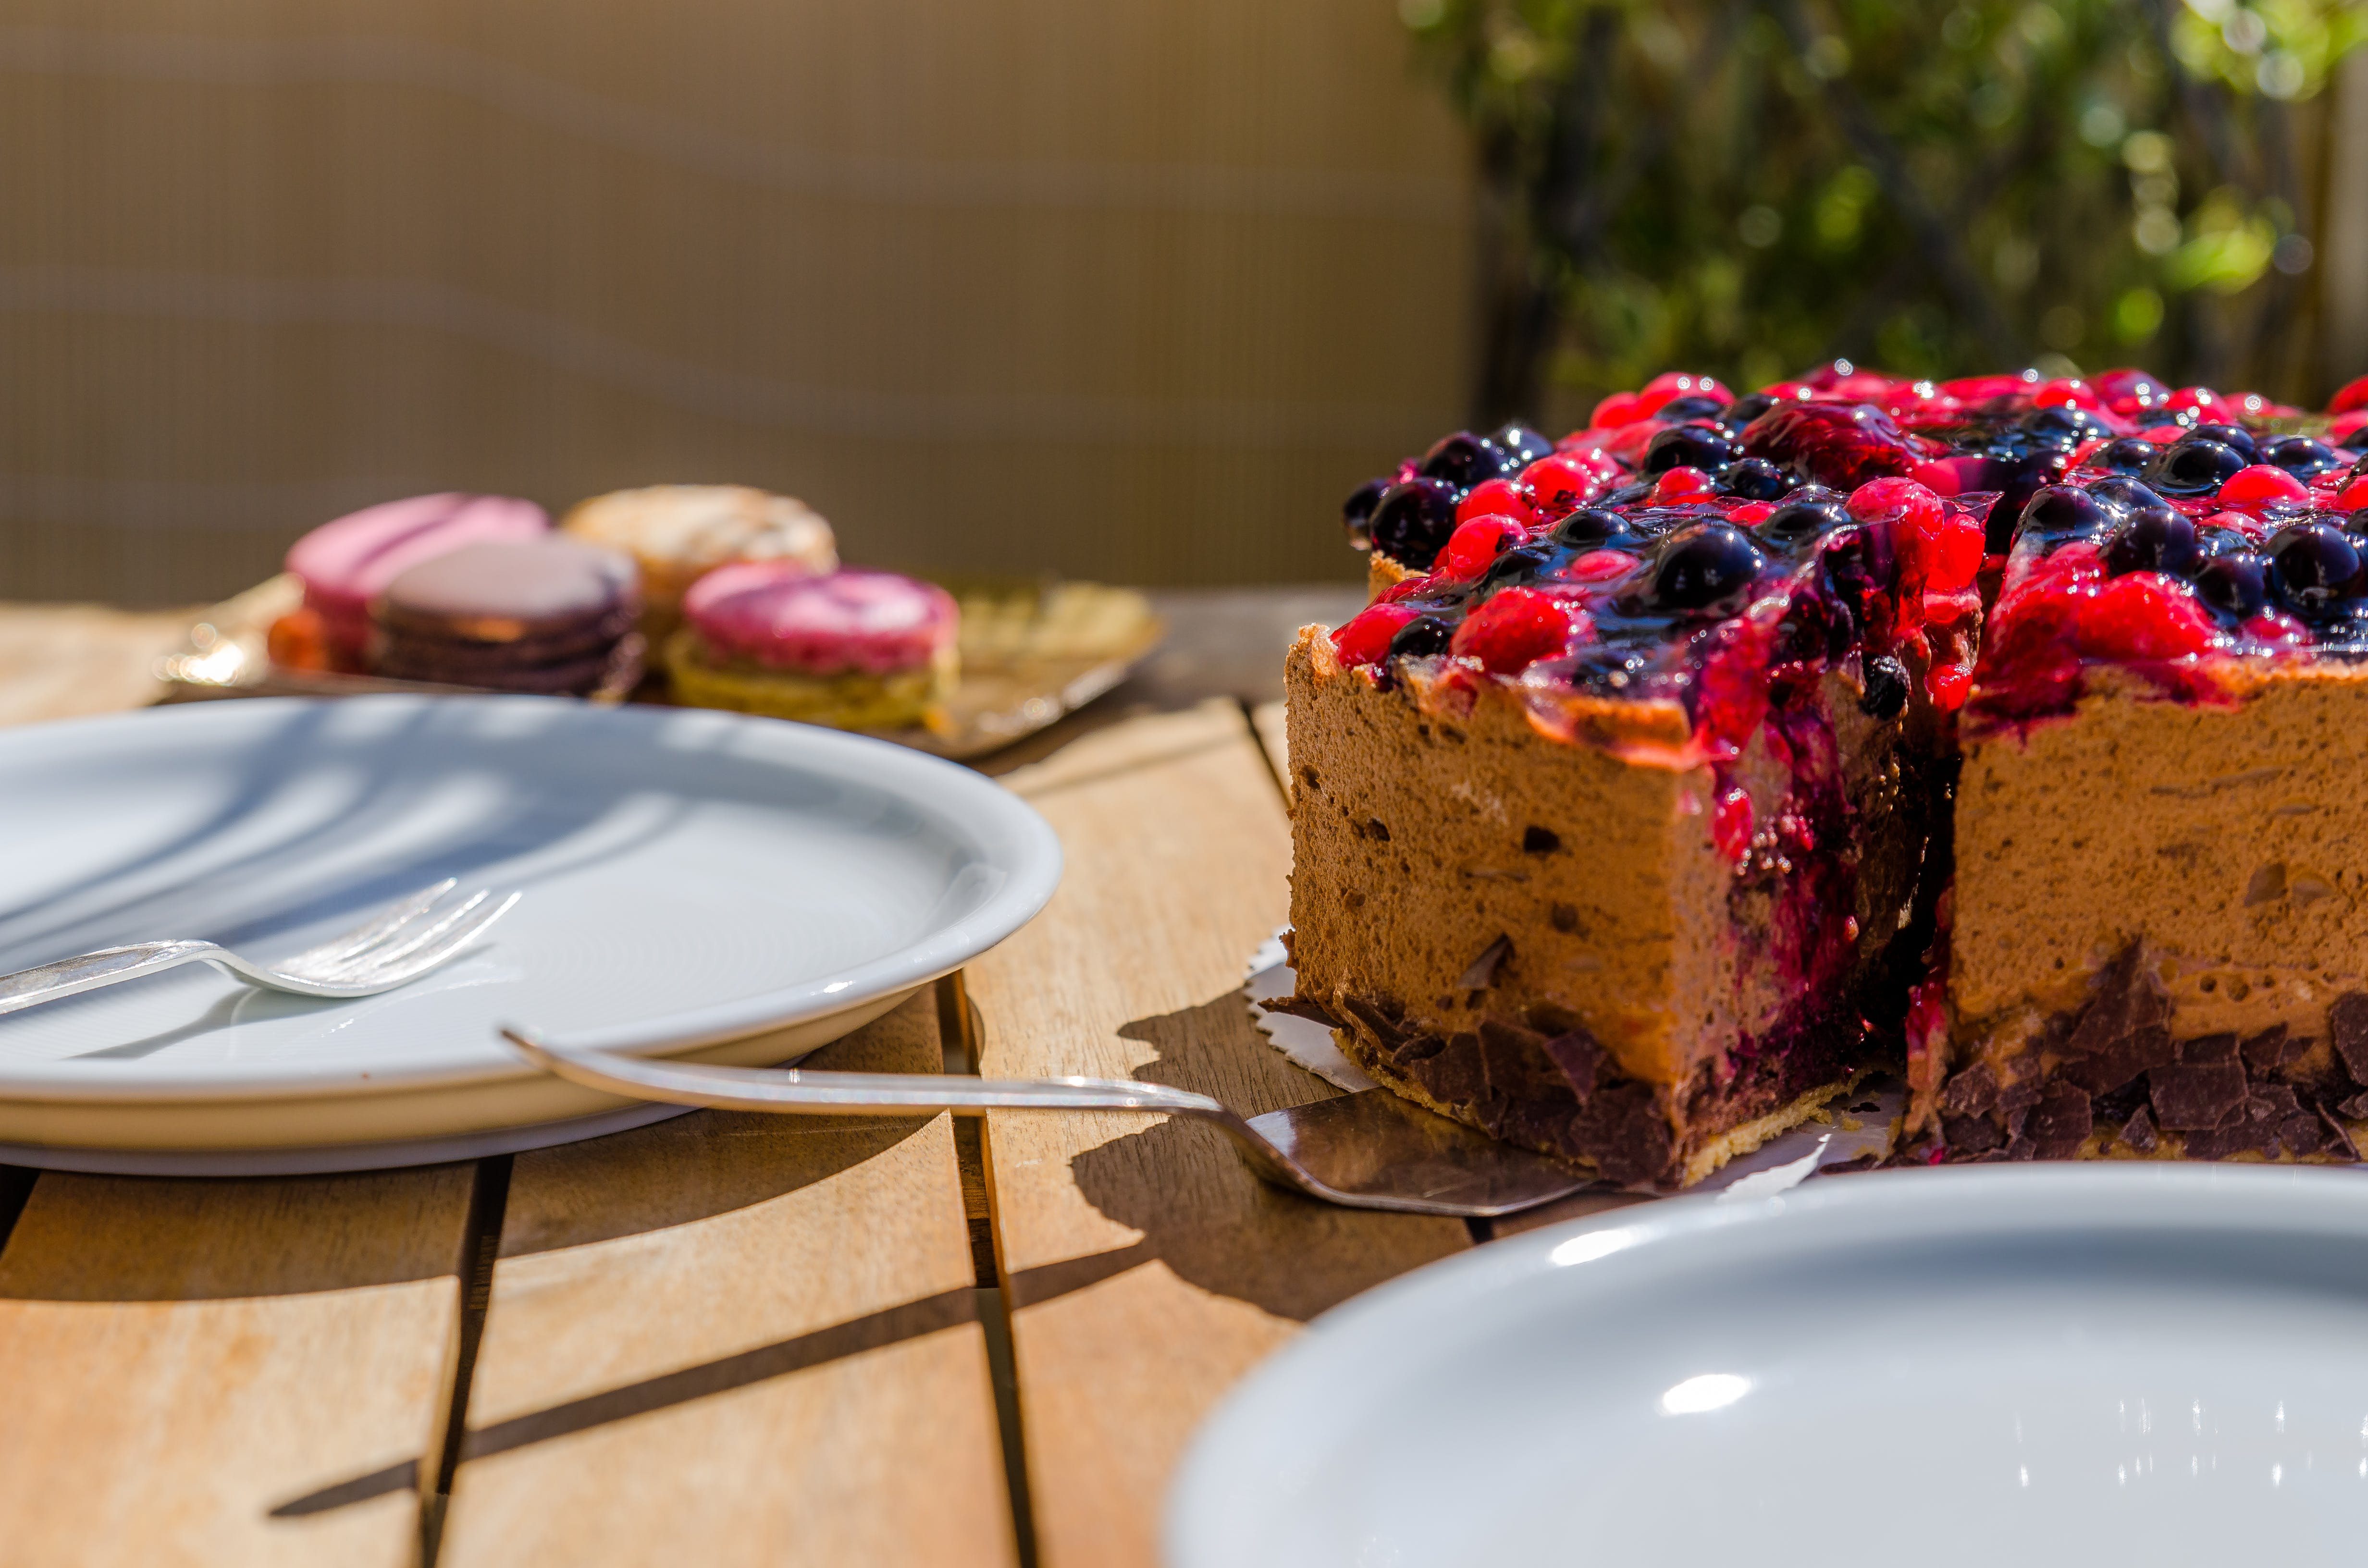 Cake Near White Ceramic Plate on Brown Wooden Table